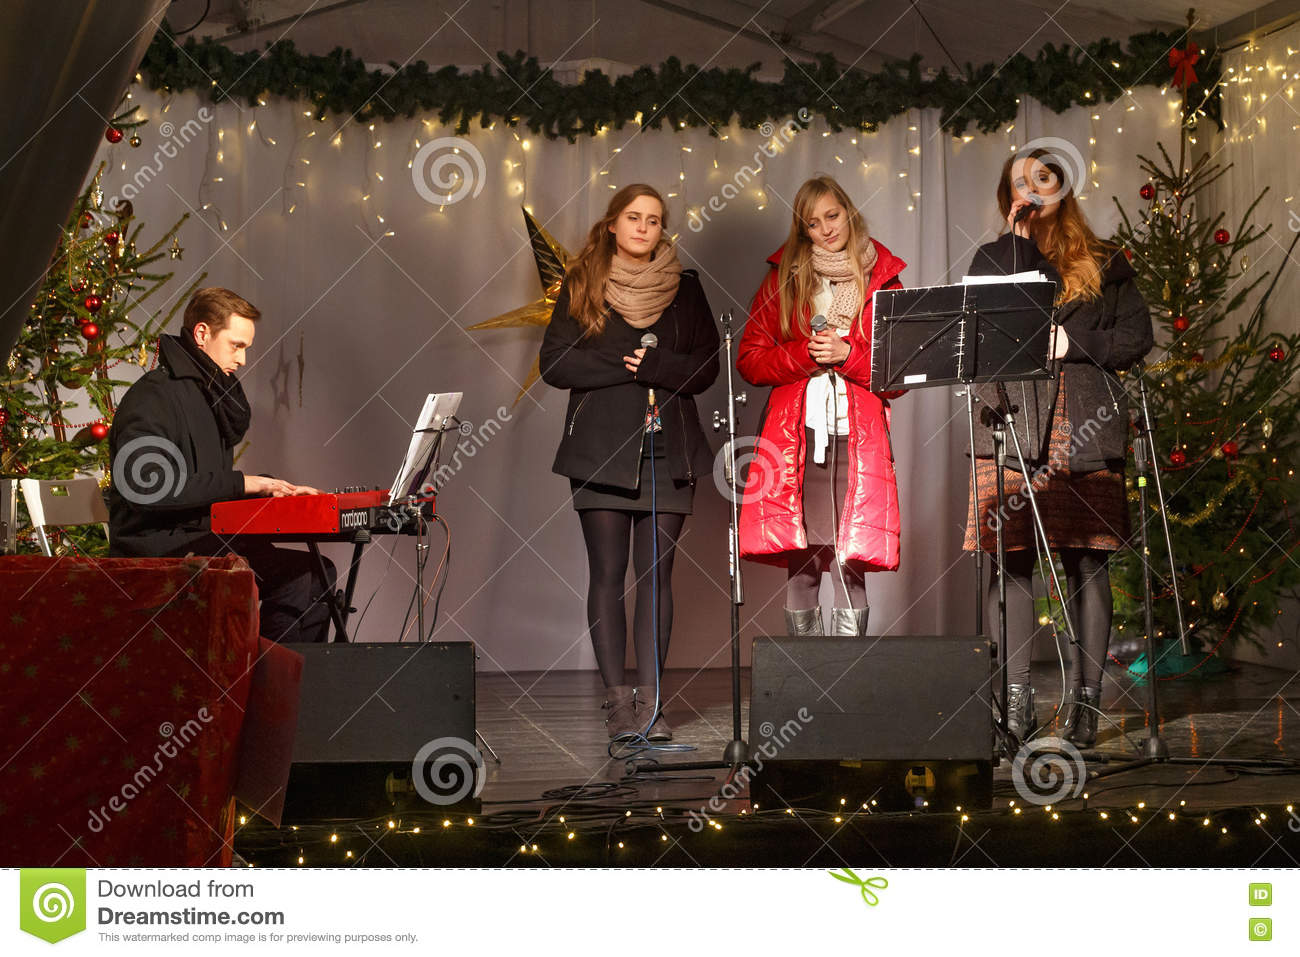 POLAND, SOPOT - DECEMBER 14, 2014: An Unknown Youth Group